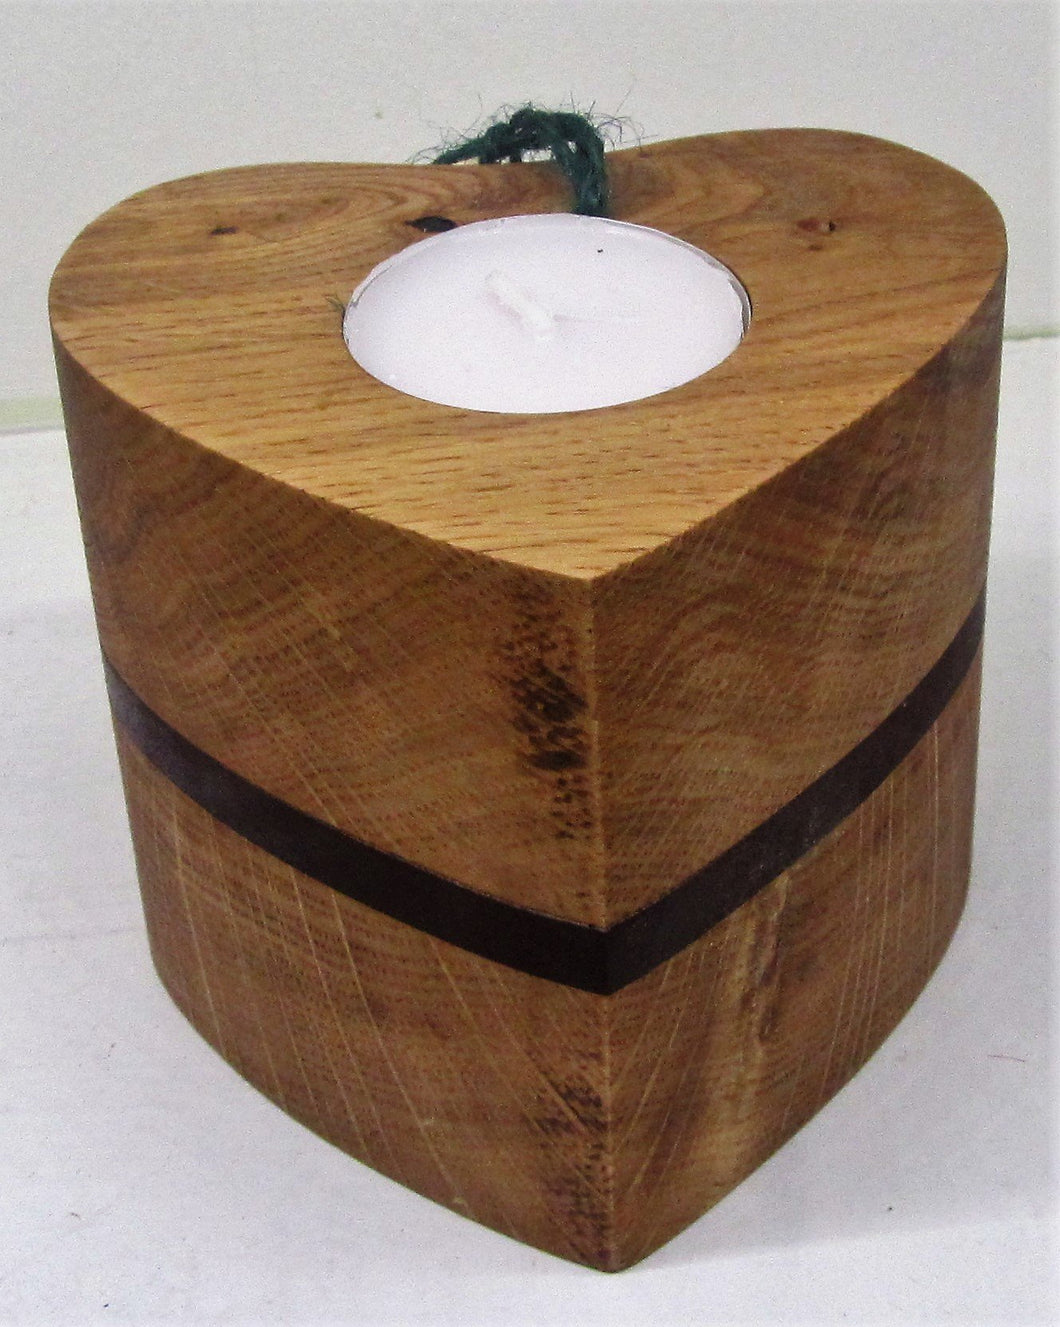 Handcrafted beautiful heart wood t-light holder - various sizes